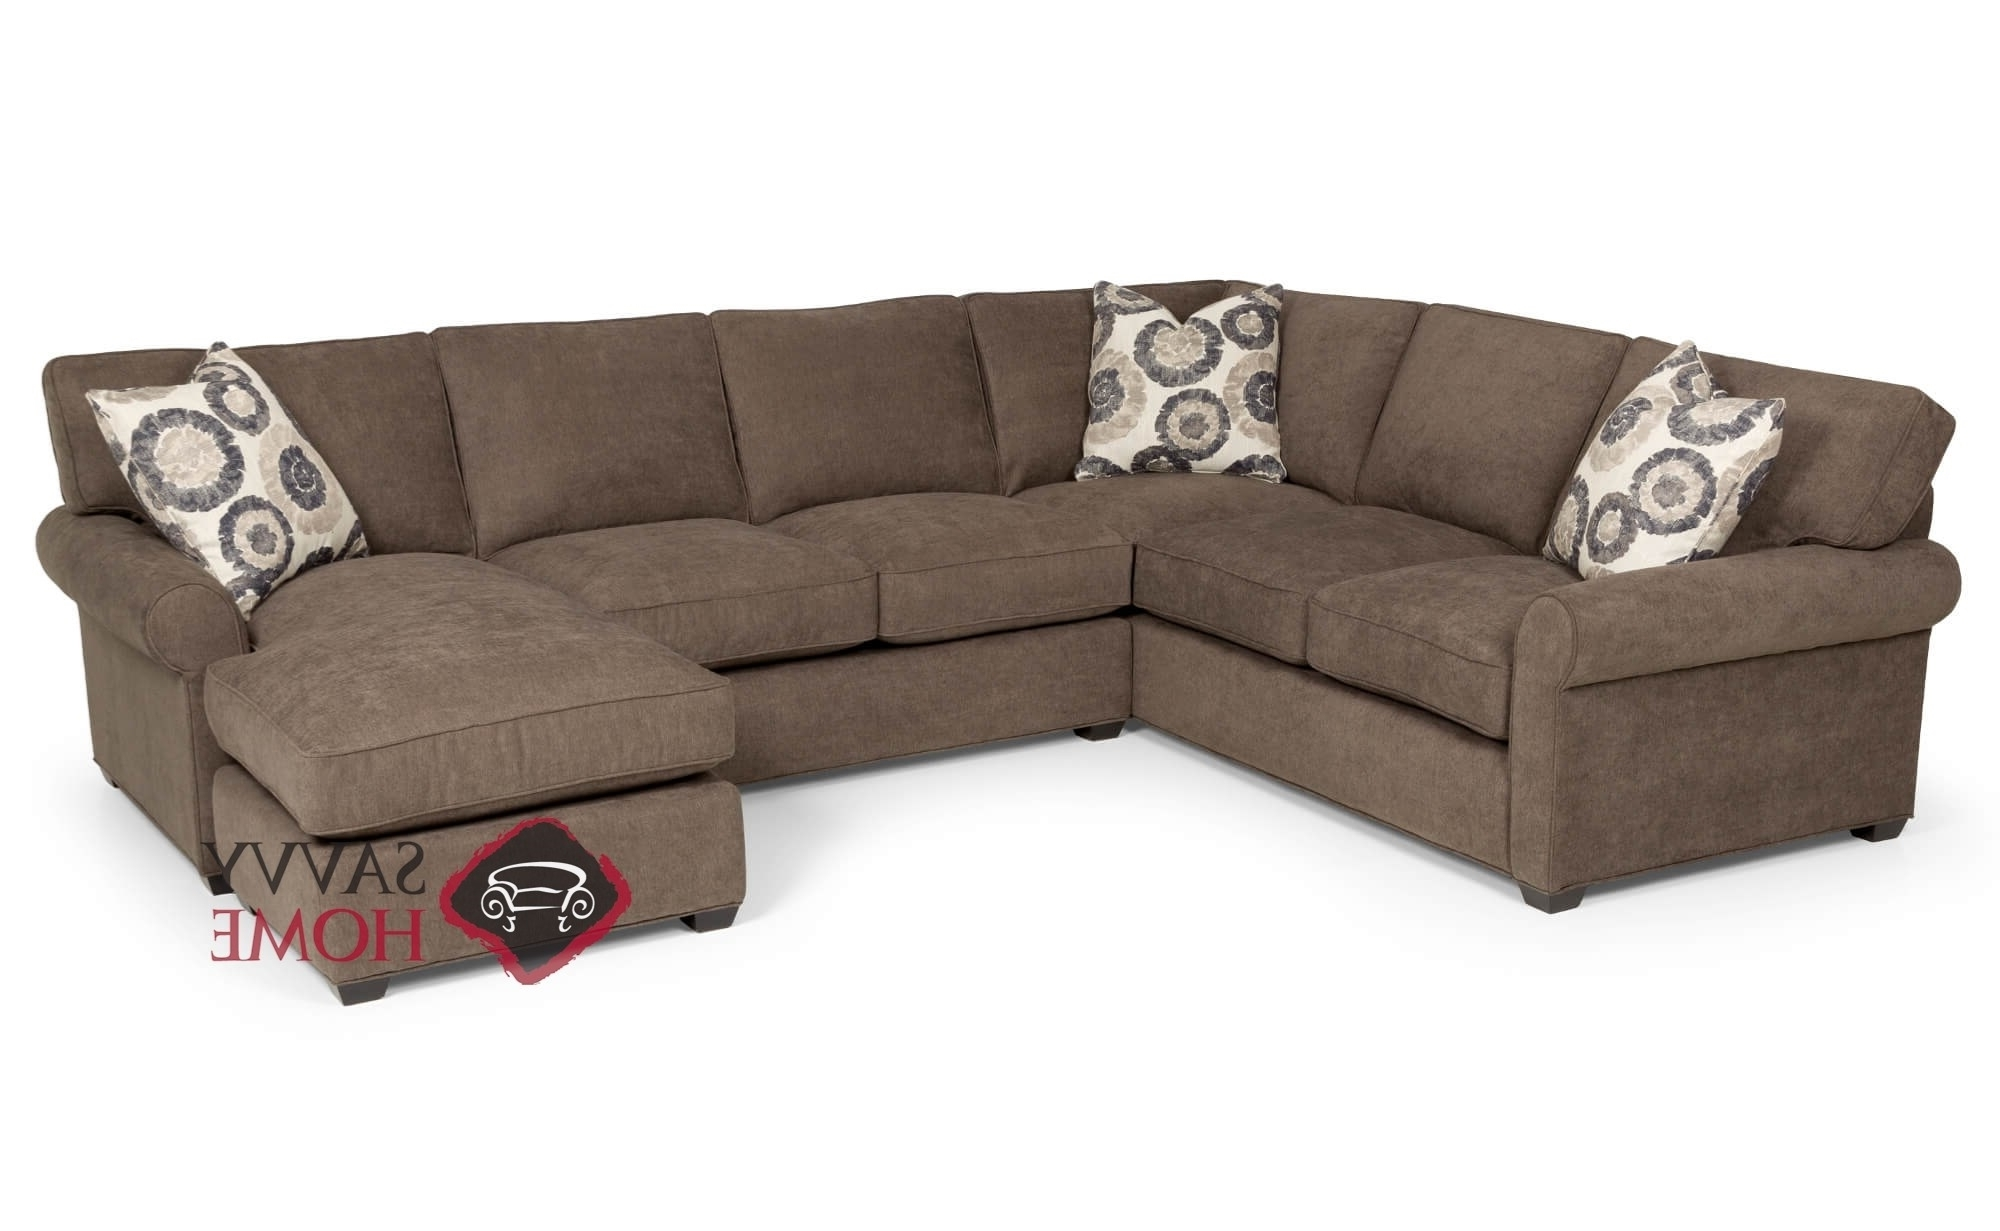 Fashionable 225 Fabric True Sectionalstanton Is Fully Customizableyou Inside Seattle Sectional Sofas (View 13 of 15)